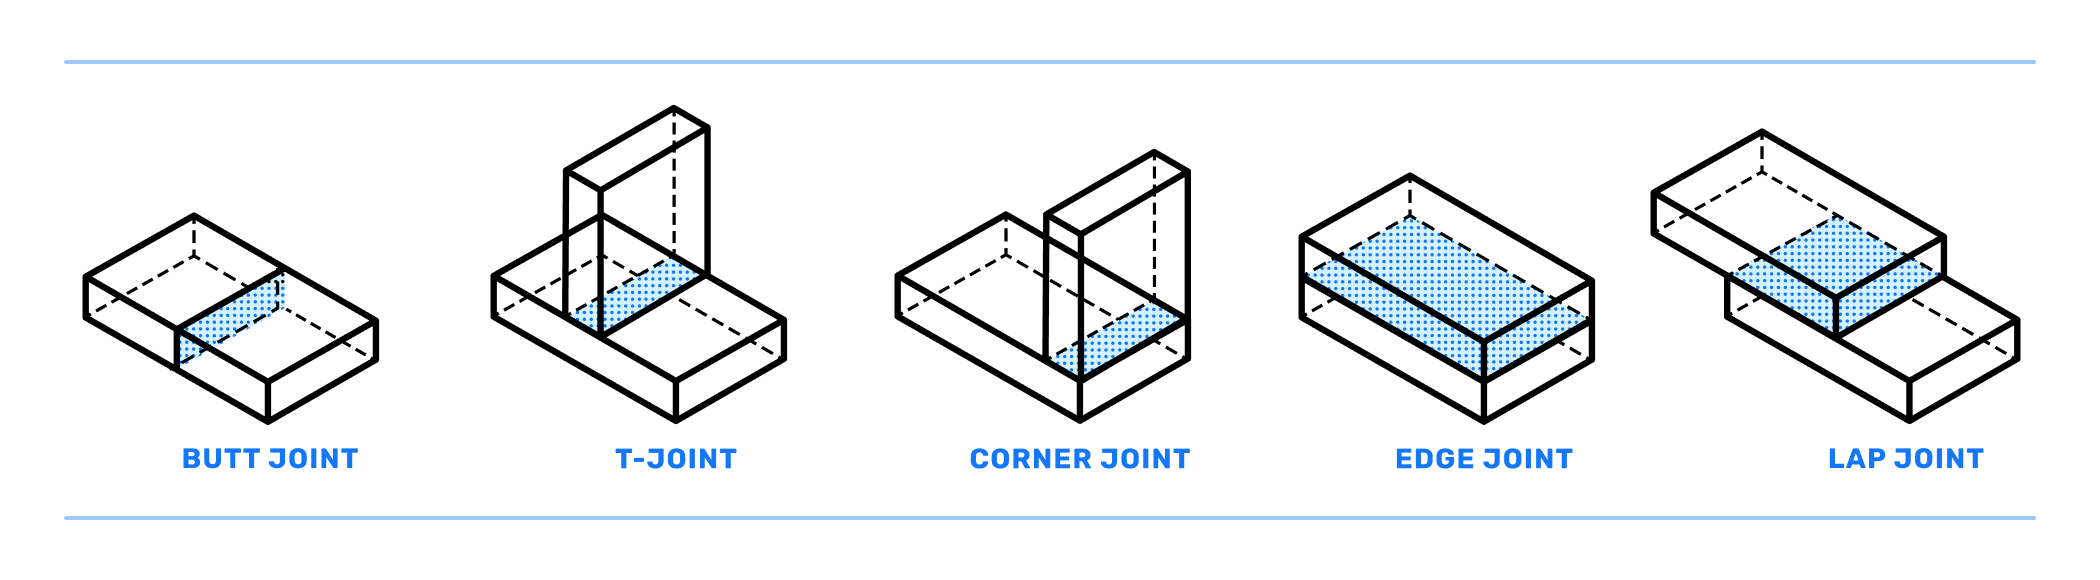 Five basic joint types welding